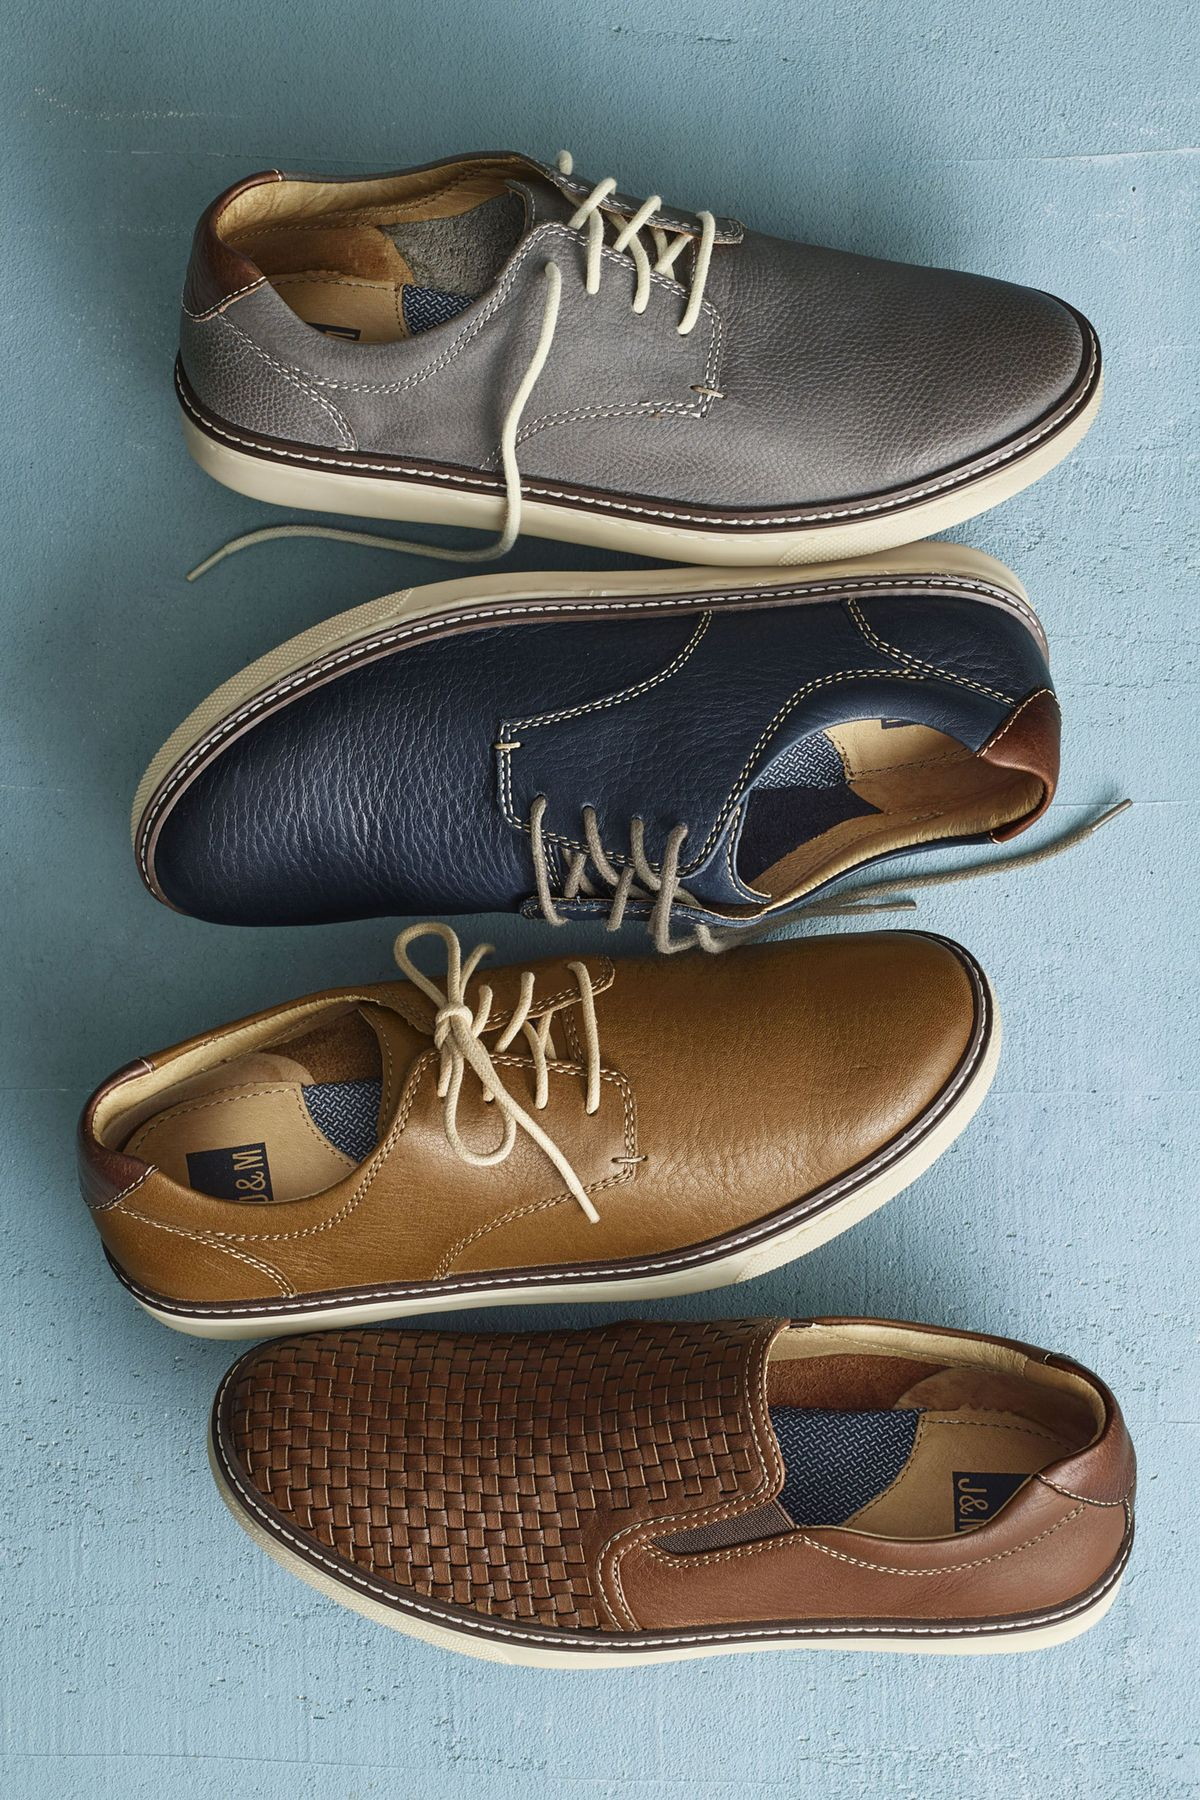 15+ Best Men's Shoes Trend That Can Make You Cooler